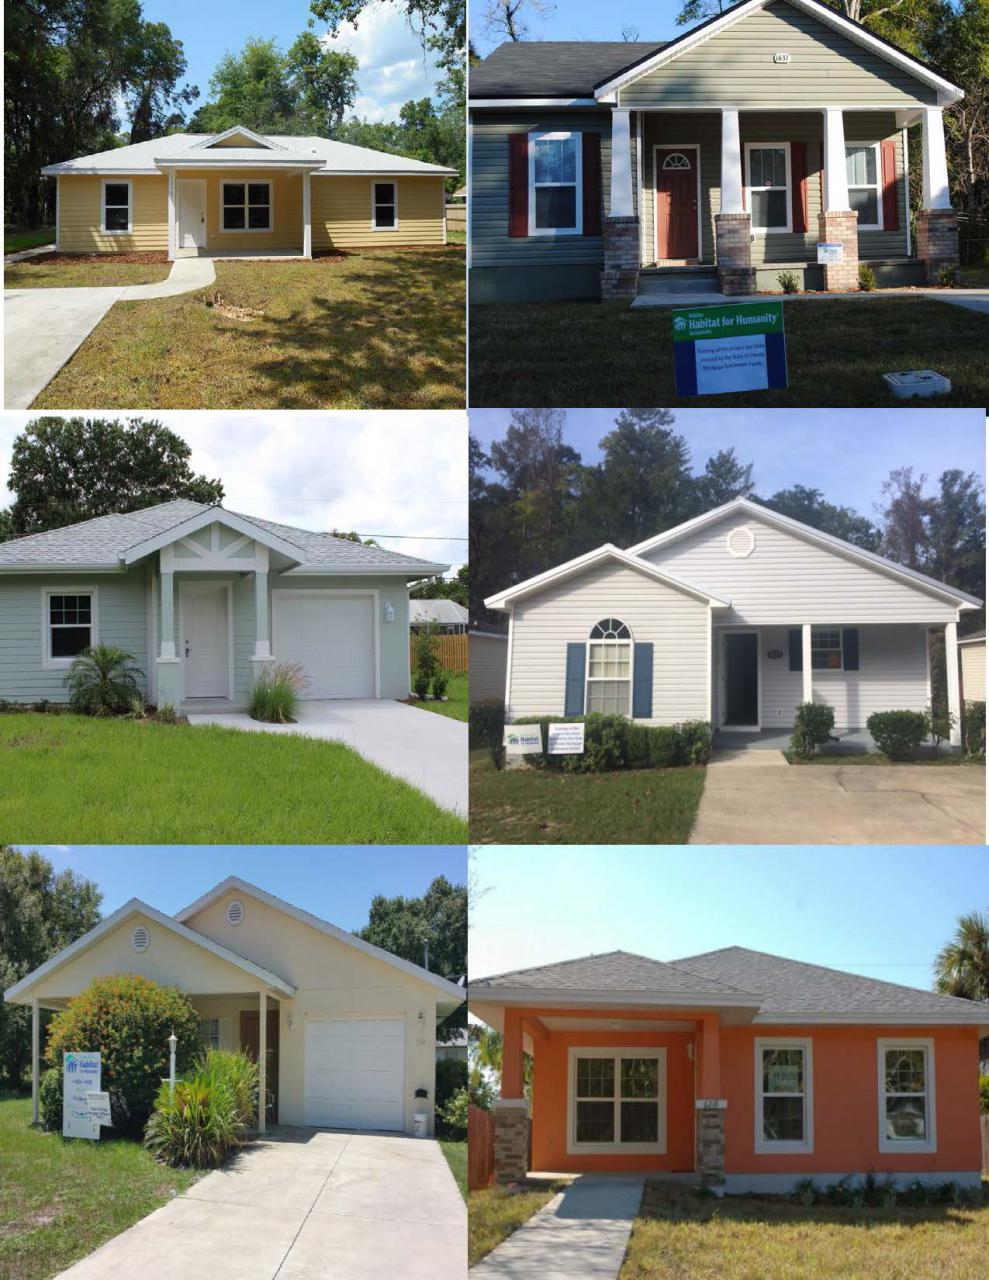 Gallery of images built through Habitat for Humanity of Florida